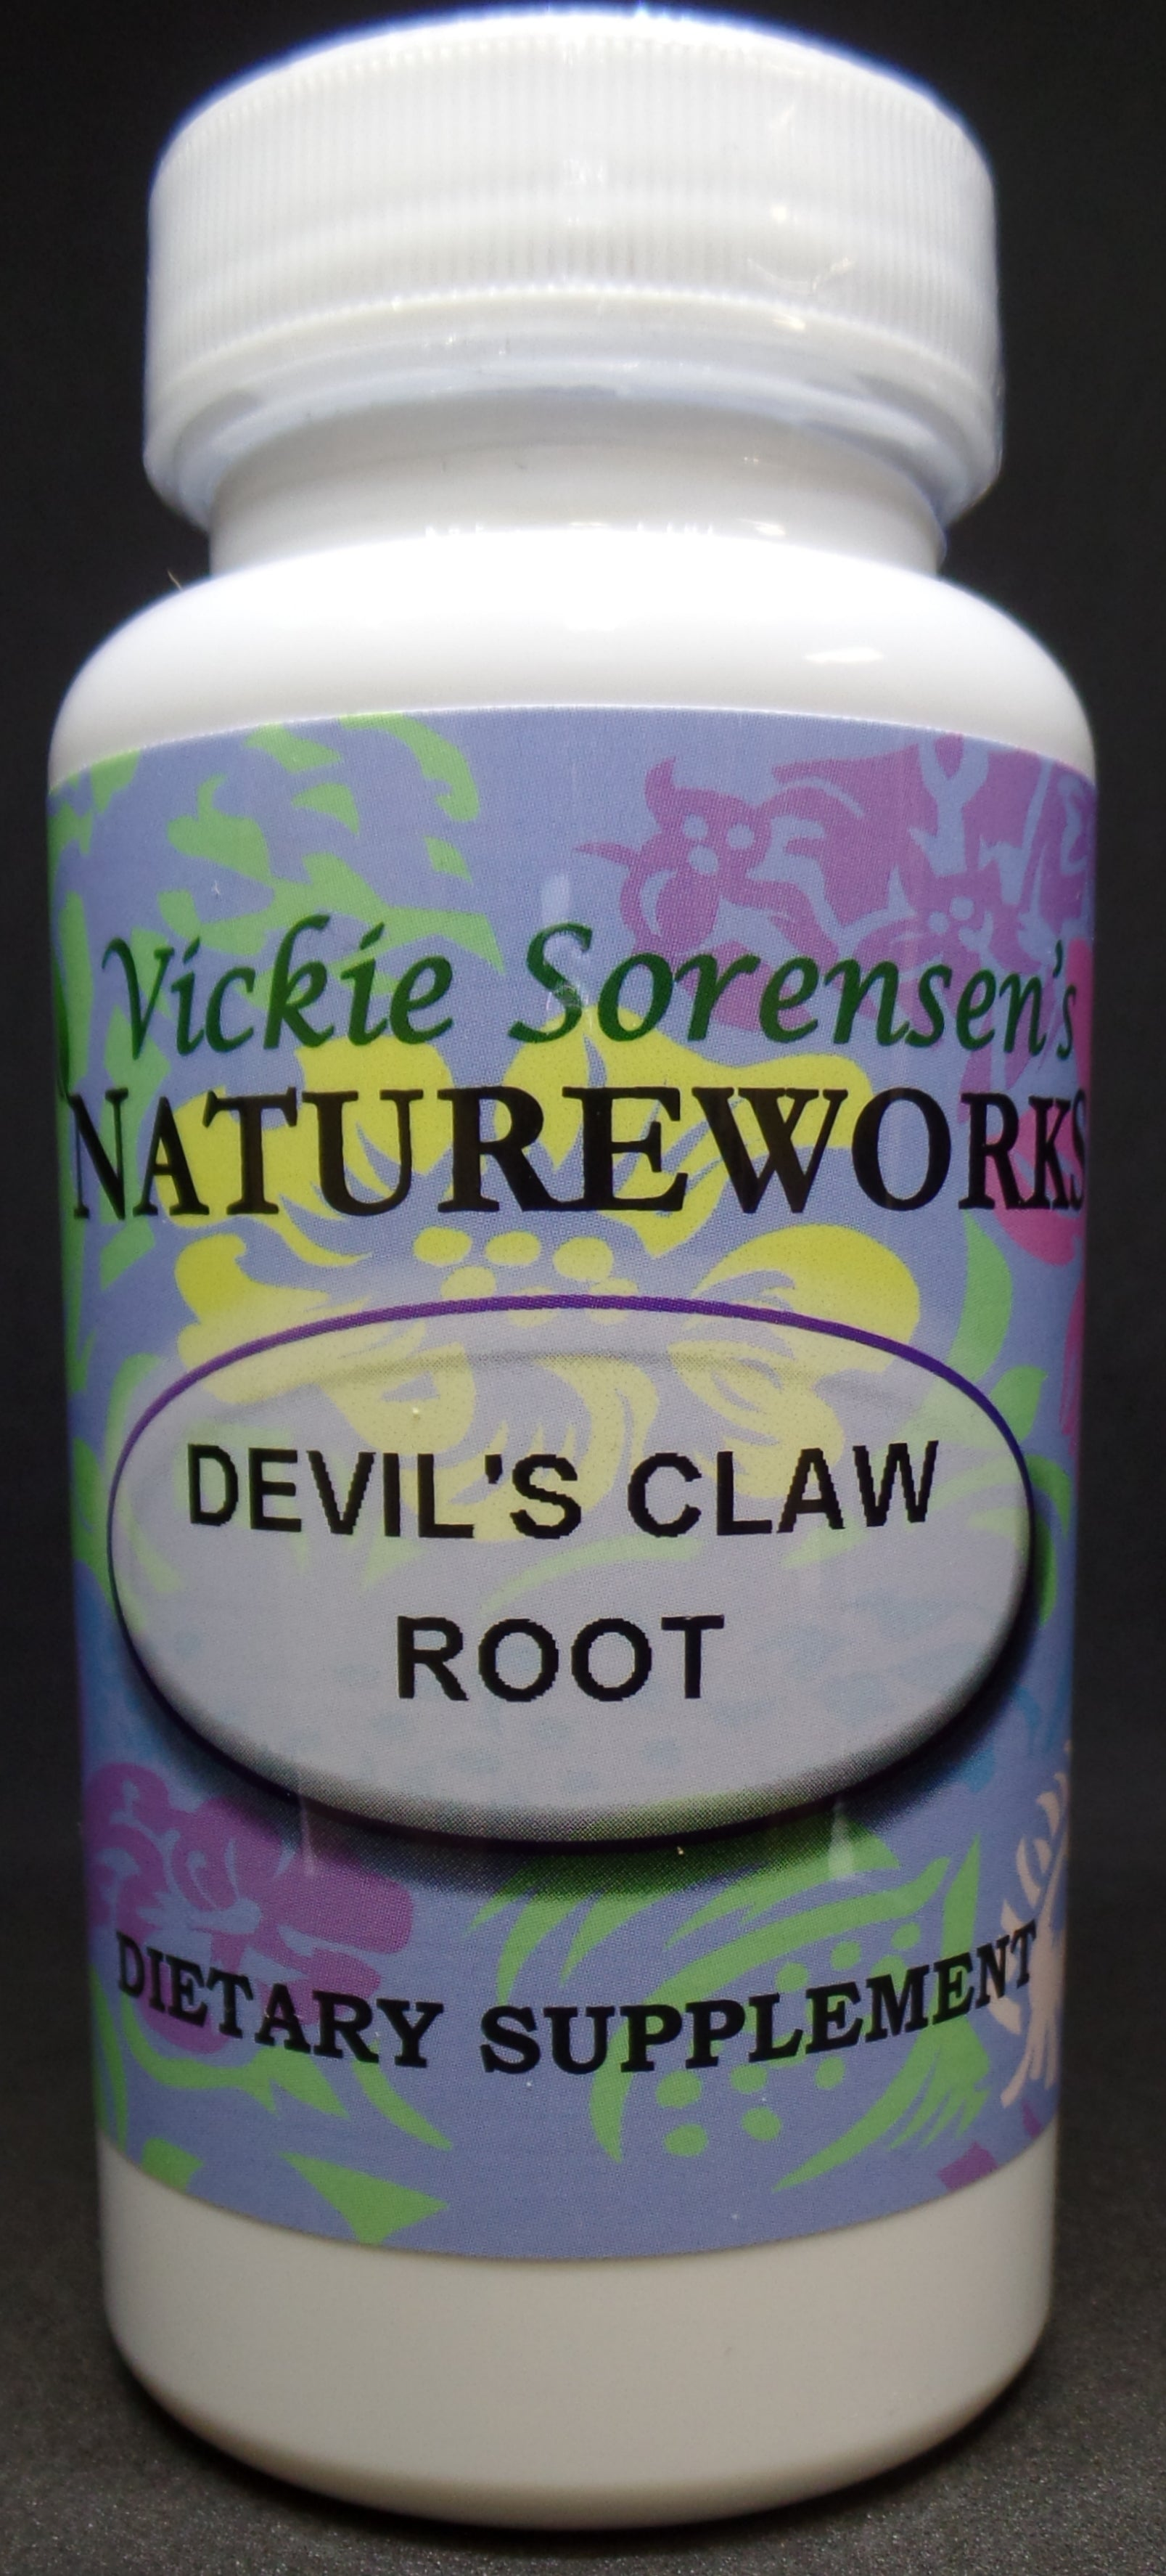 Devils Claw Root